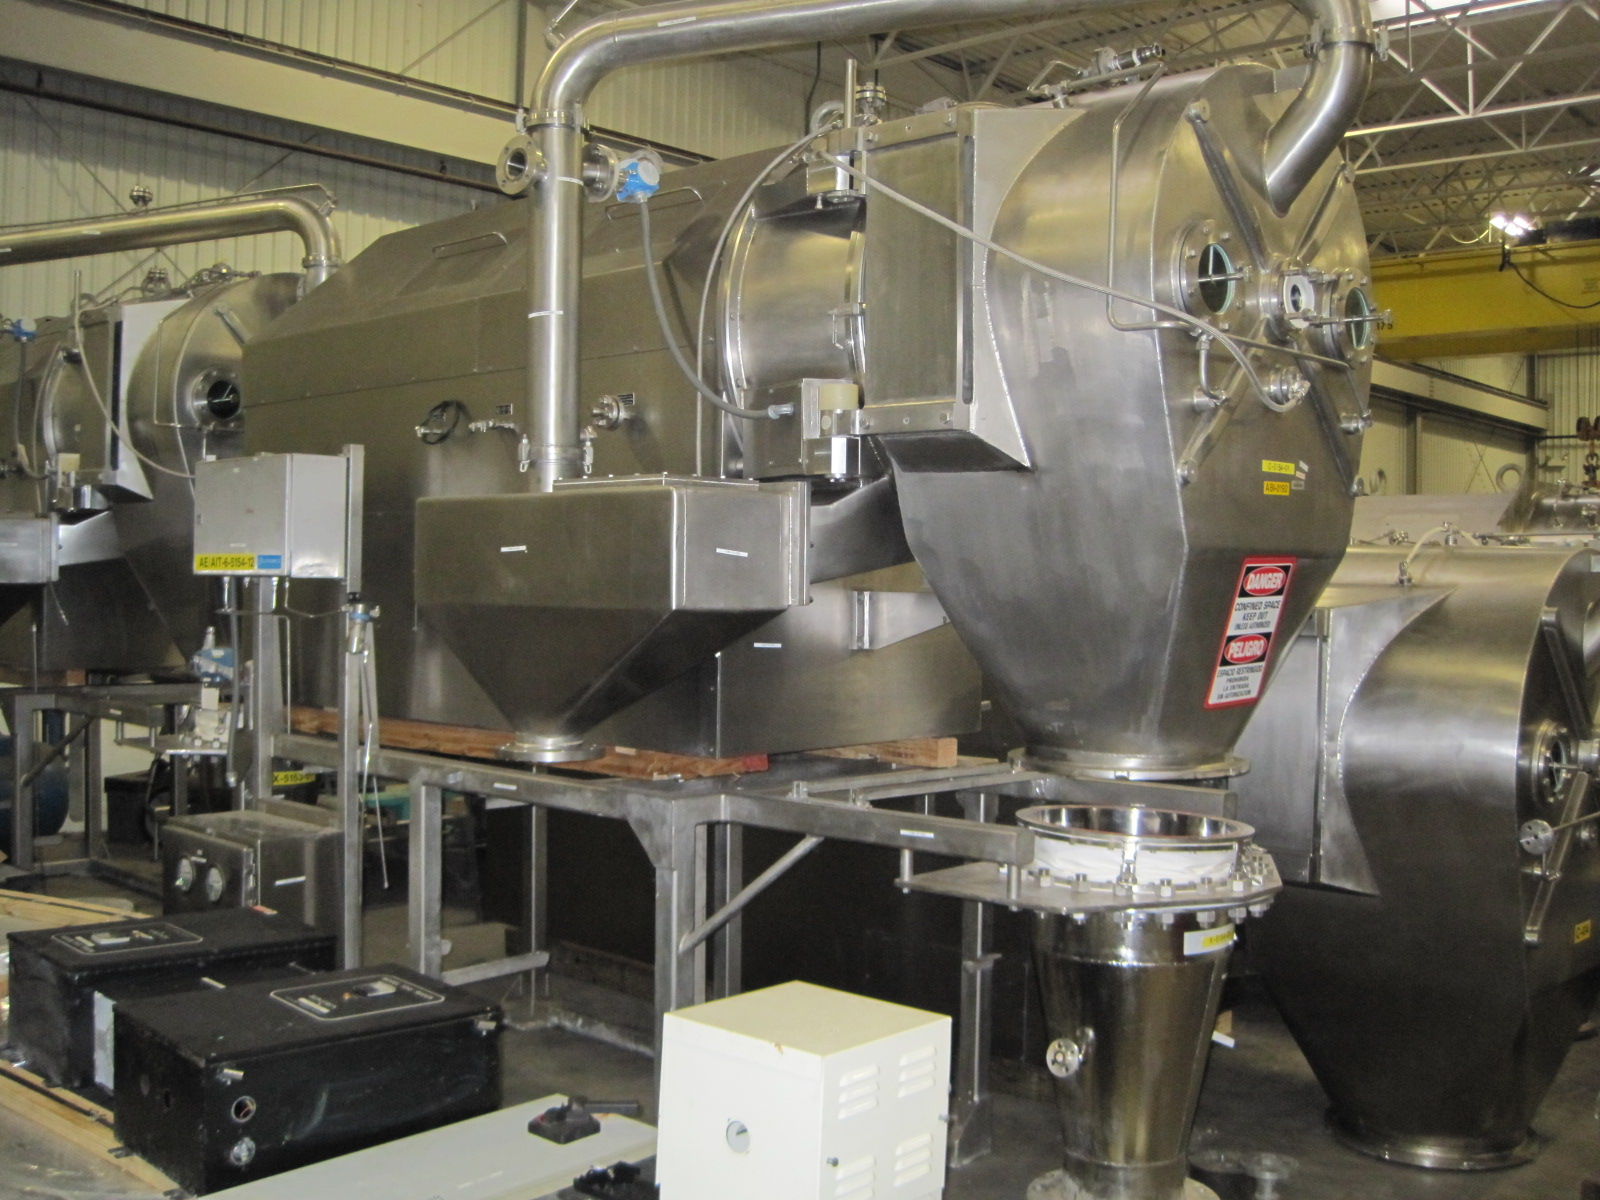 ***SOLD***HEINKEL Model HF800.1 Pharmaceutical Grade Inverting Filter Centrifuge.  Contact Parts are (1.4571) 316/Ti Stainless Steel. Inner Bowl Dia. 800mm. Capacity 149KG/119L. 1600 RPM Max Drum Speed. G-Force 1138 G's.  All Electrical unit Complete with Controls.